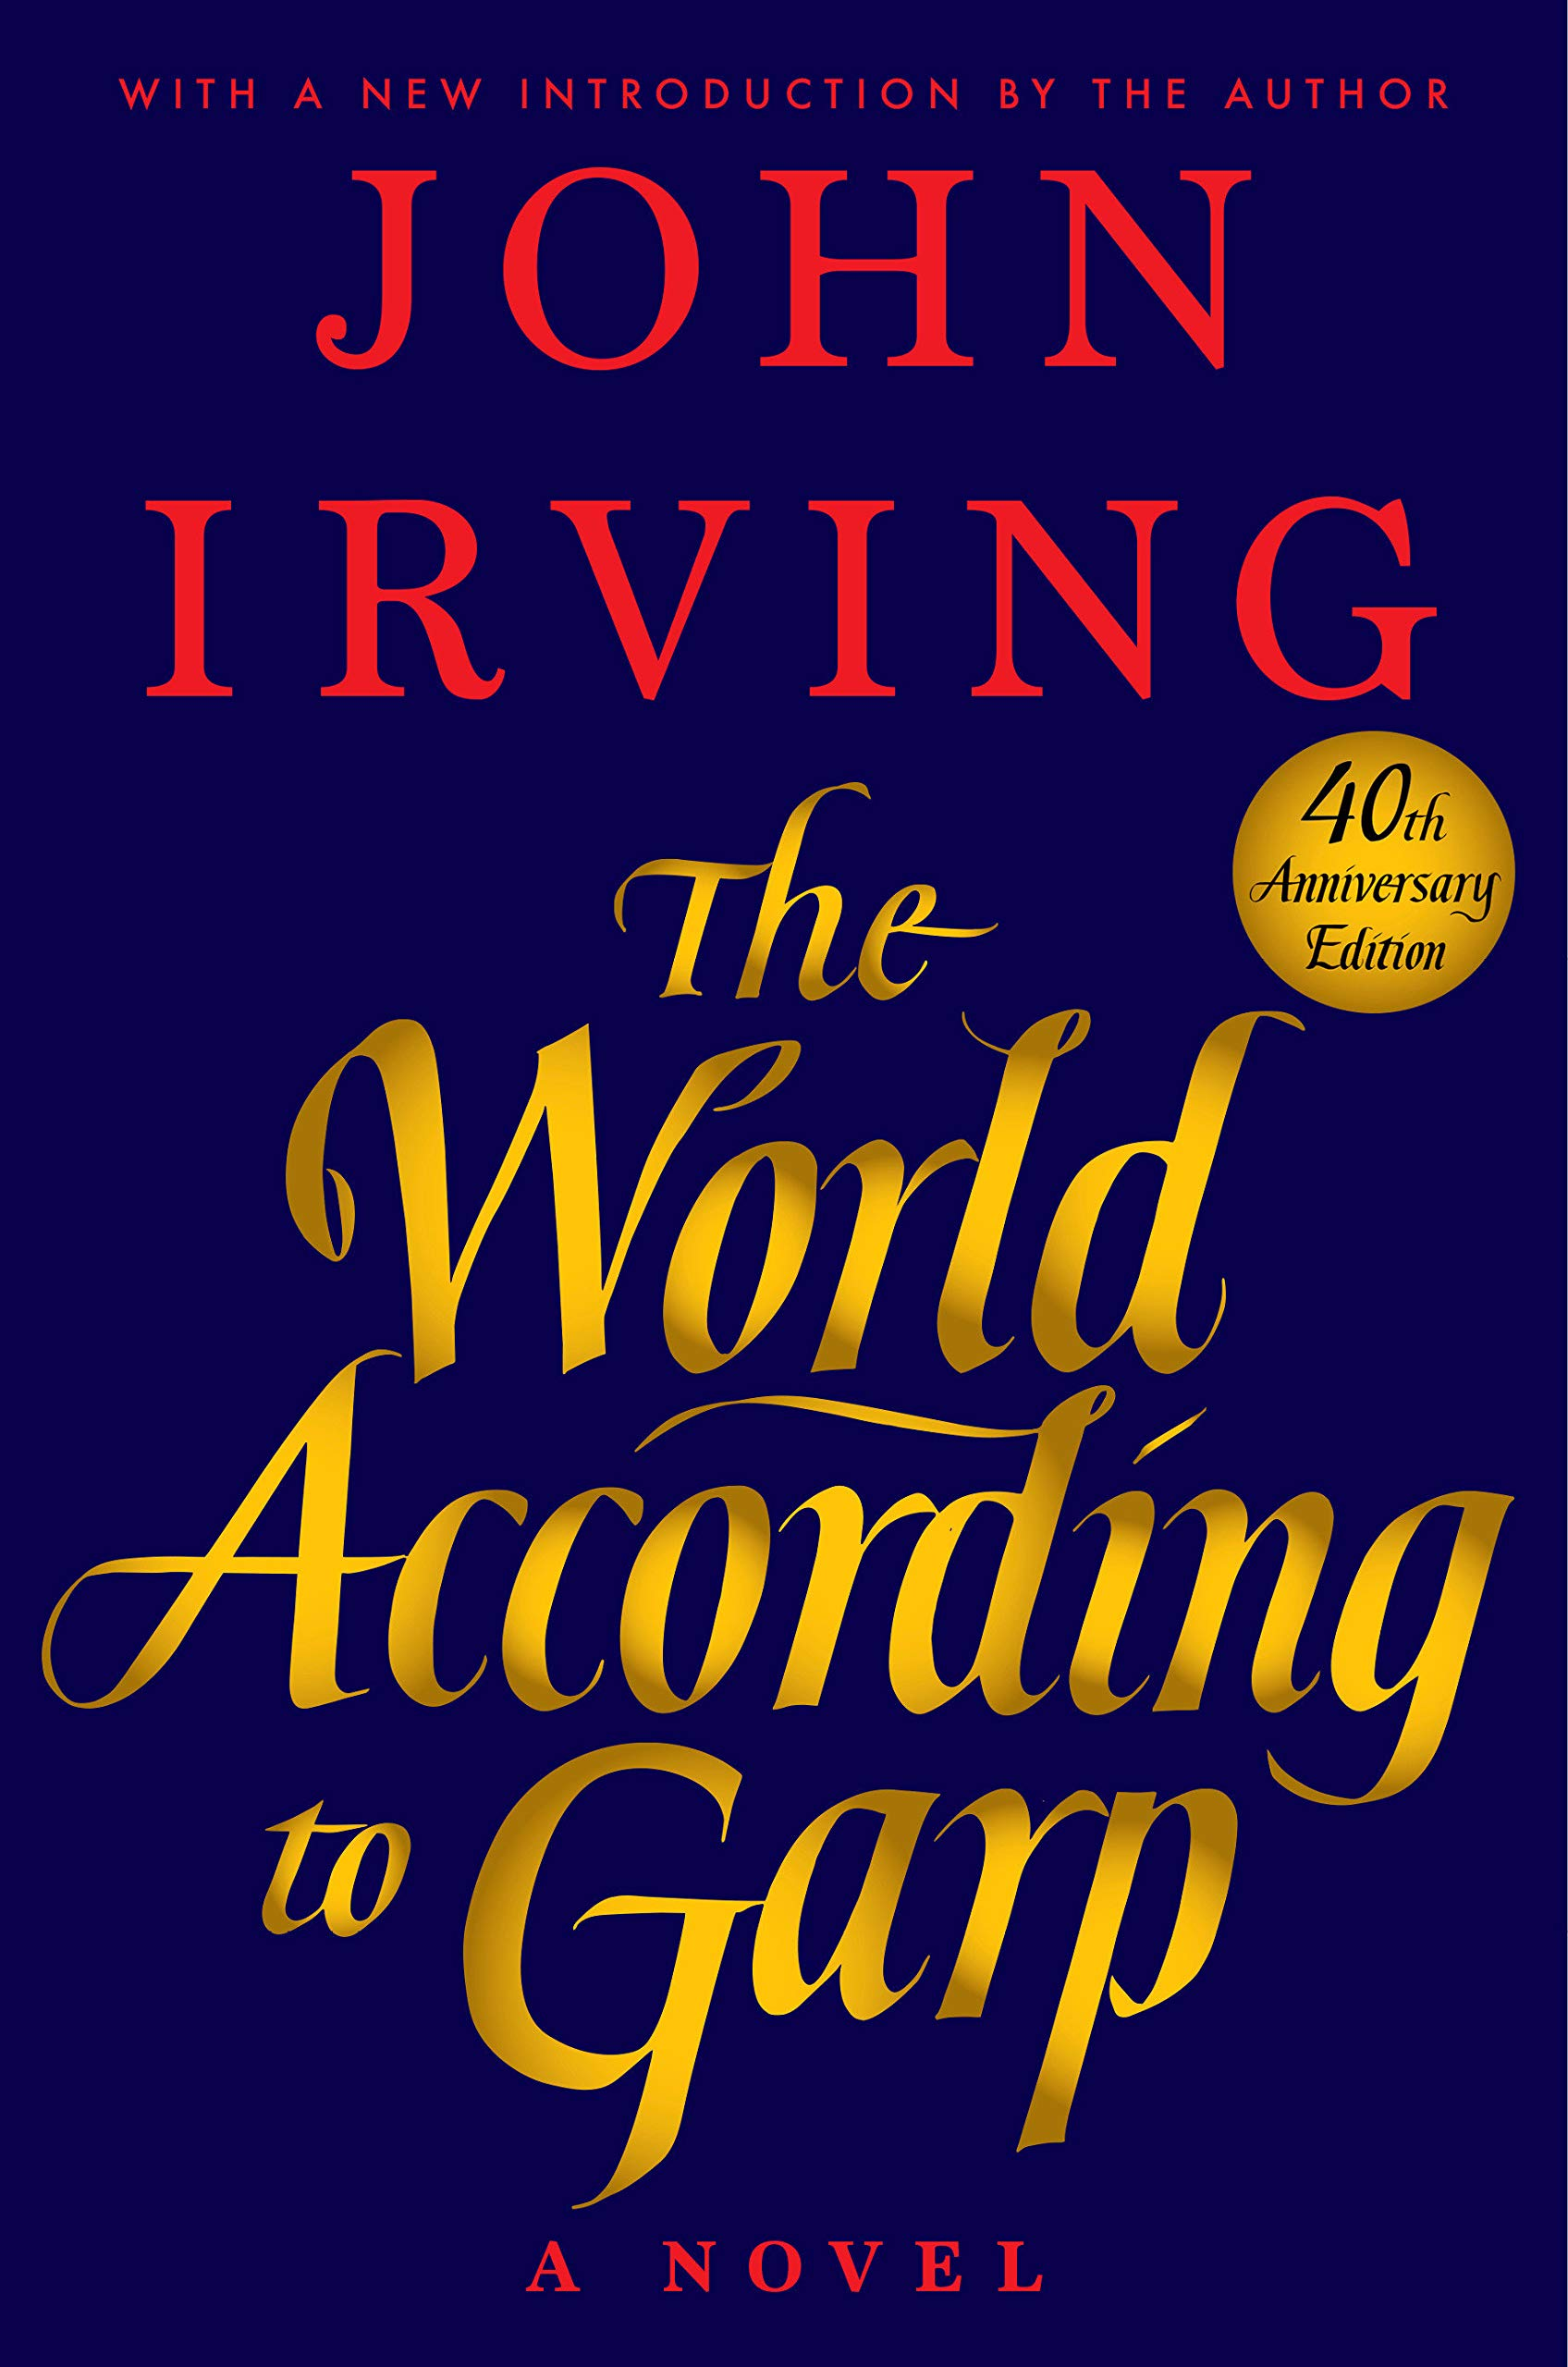 'The World According to Garp' – John Irving